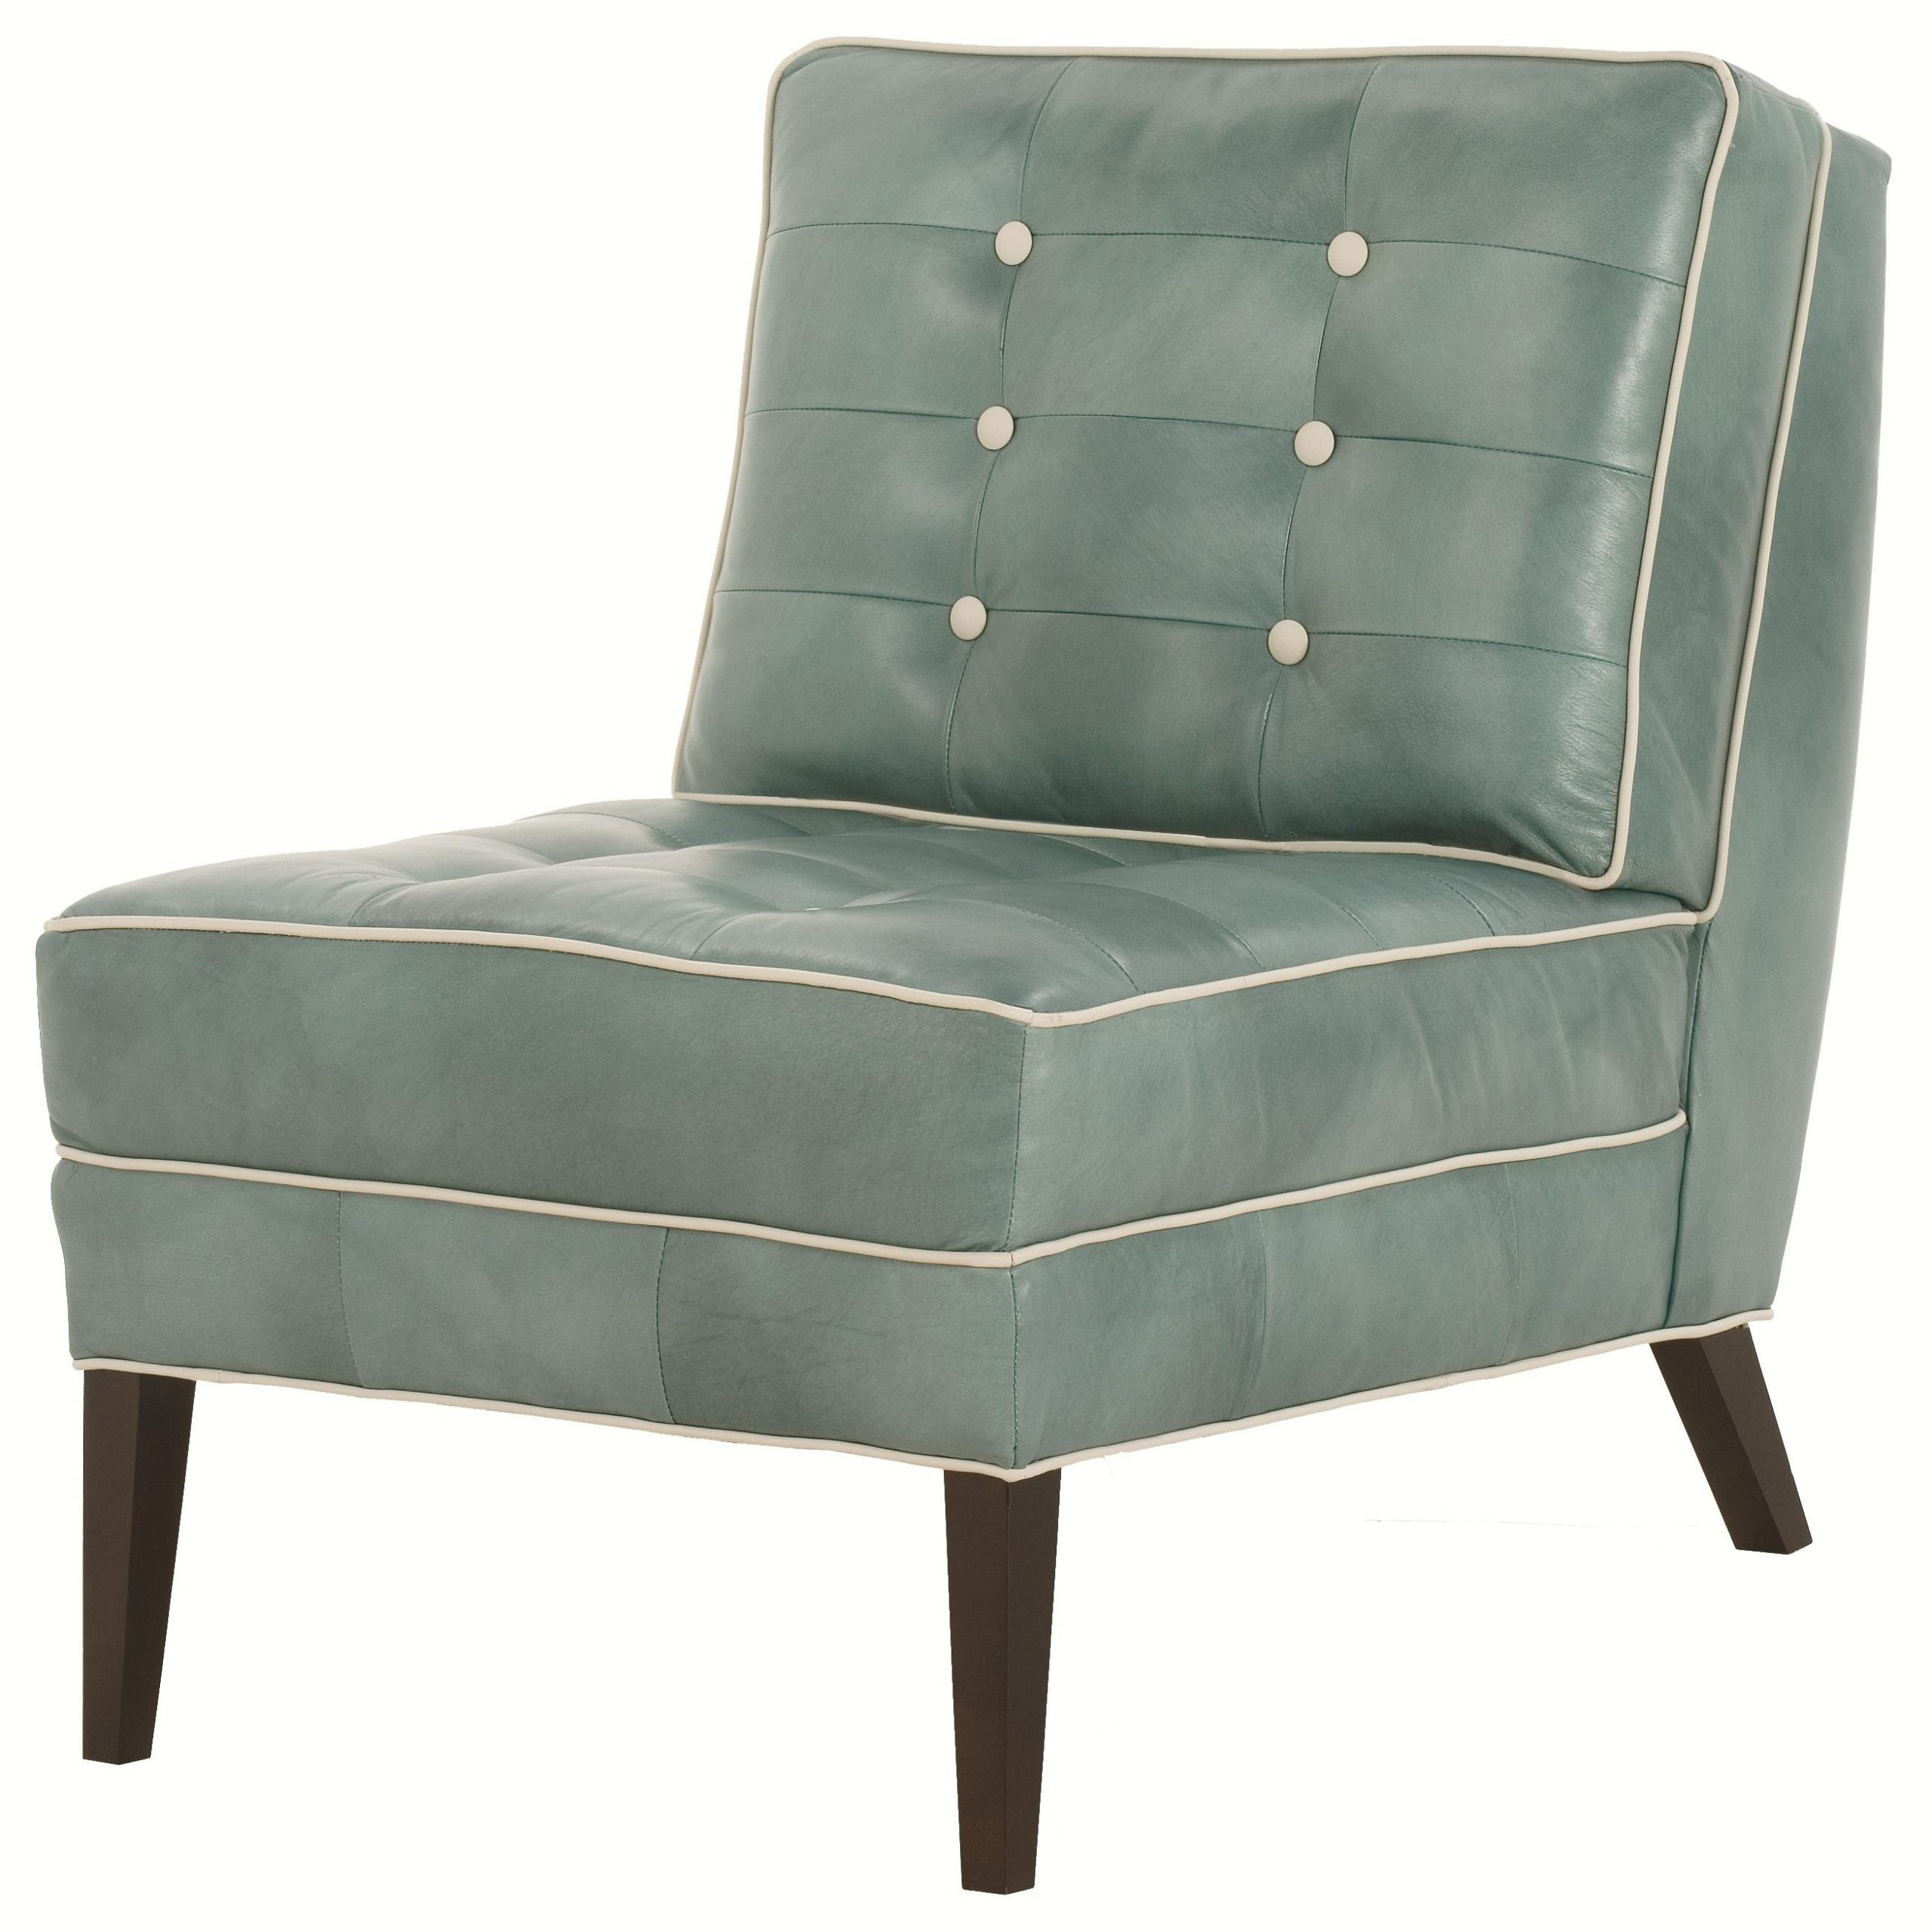 Robin Bruce Accent Chairs Architect Armless Contemporary For Trendy Armless Upholstered Slipper Chairs (View 16 of 20)